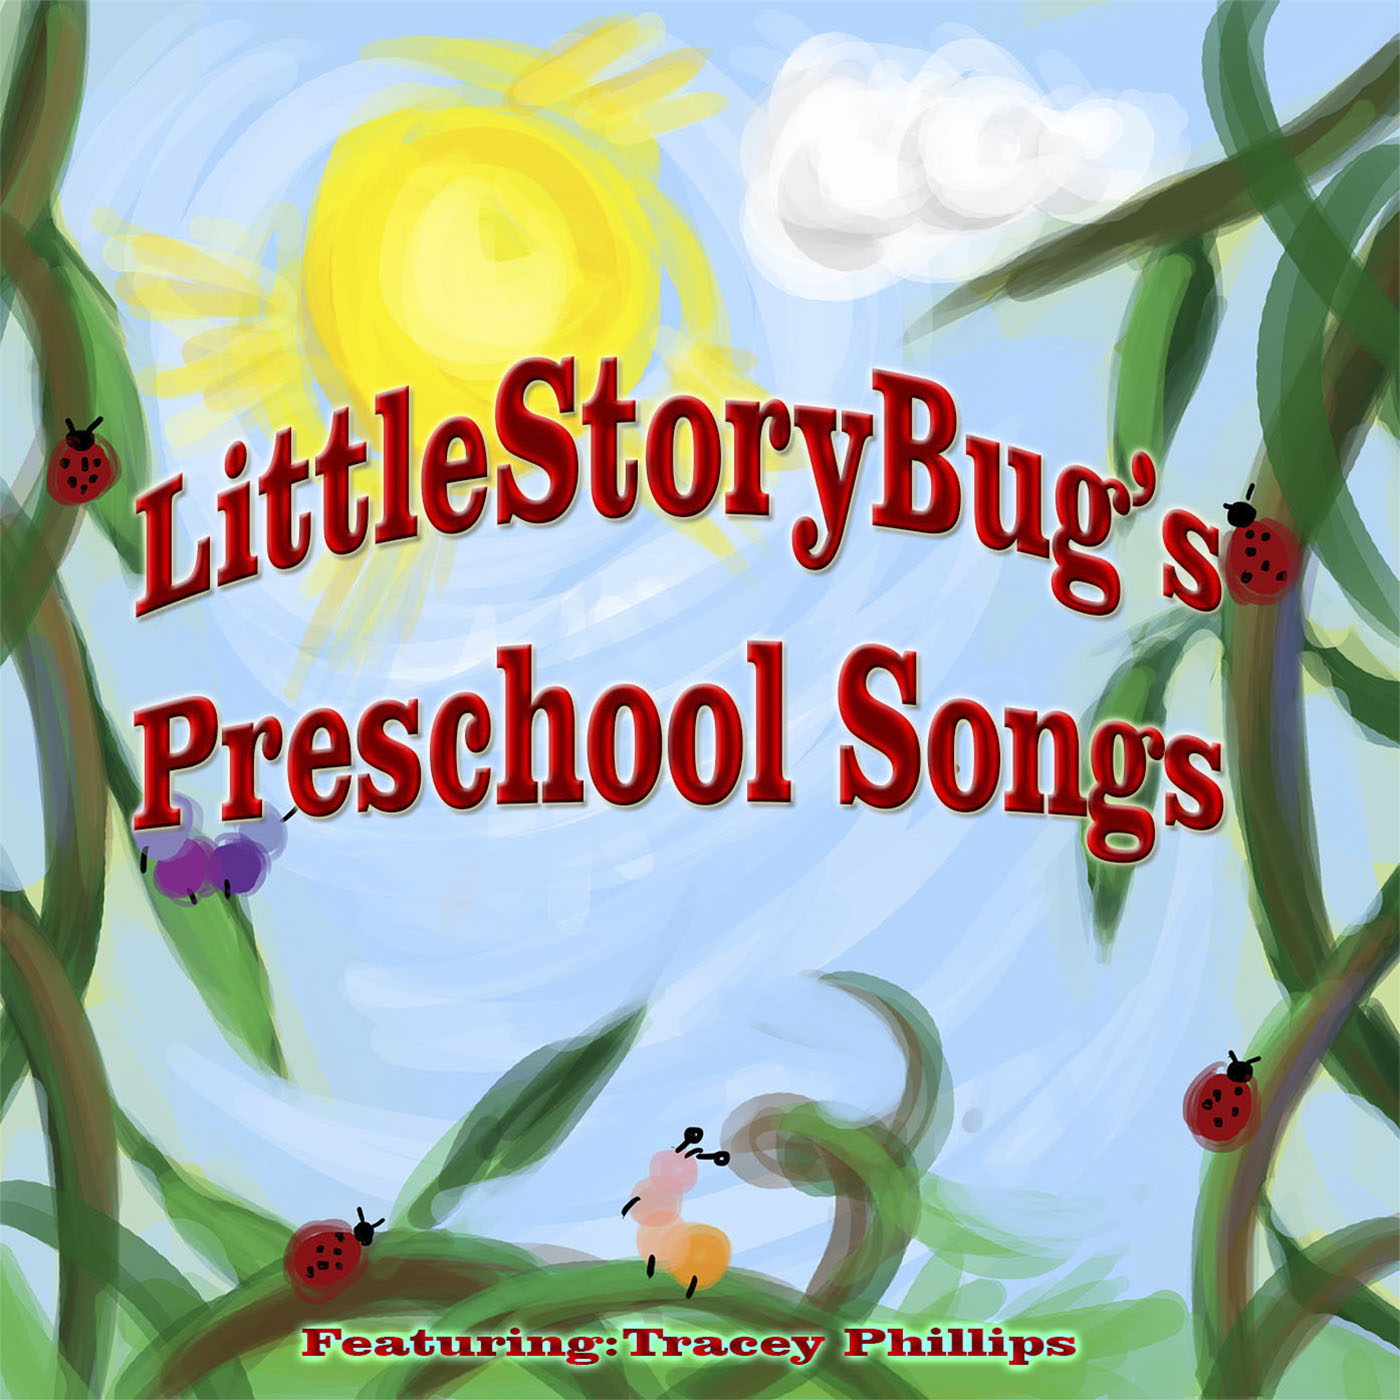 LittleStoryBug's Preschool Songs Volume 1